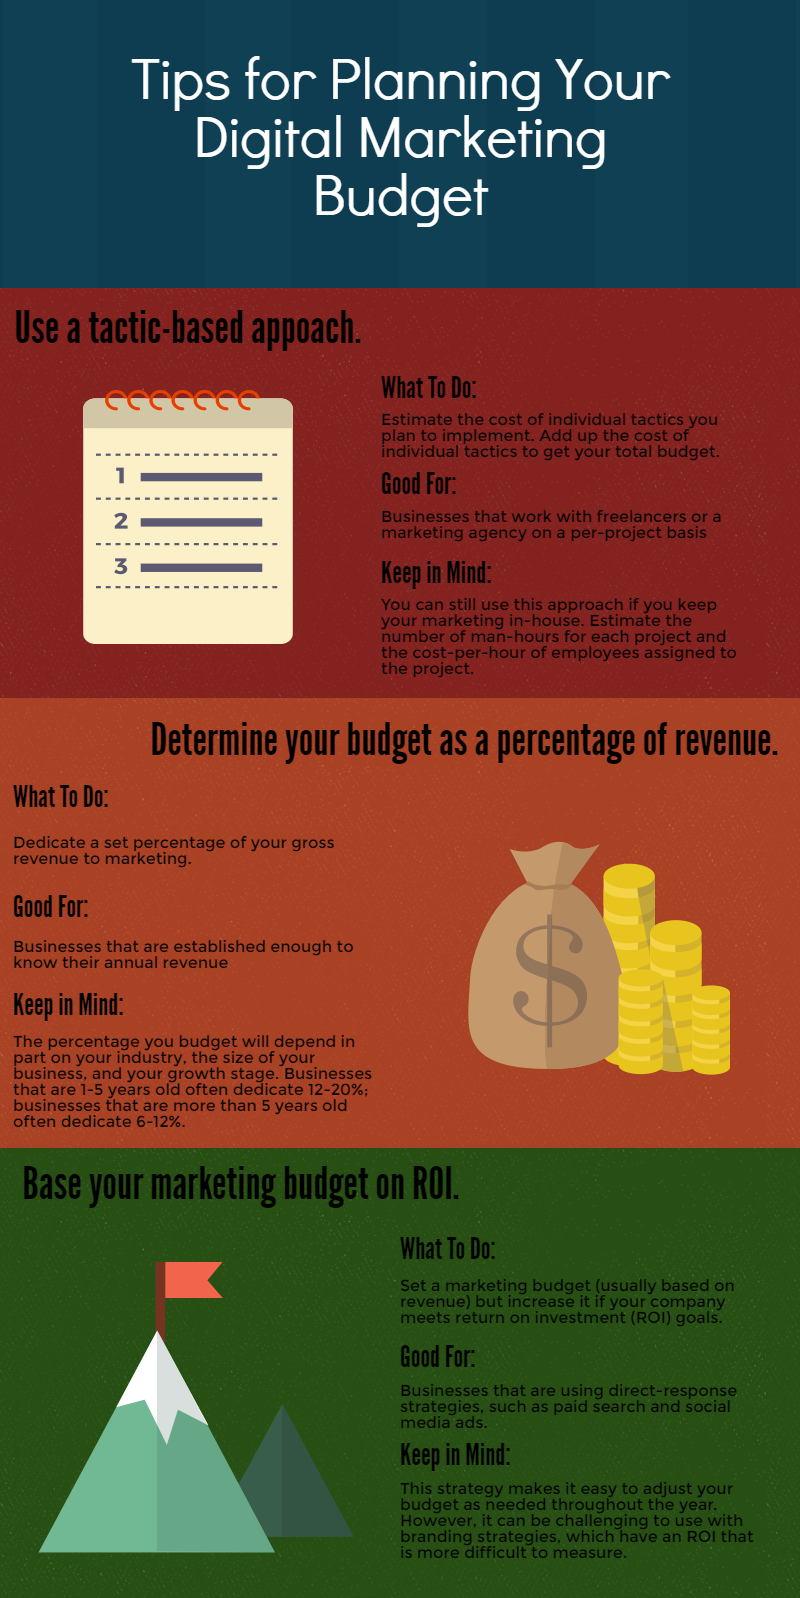 Digital Marketing Budget Tips Infographic